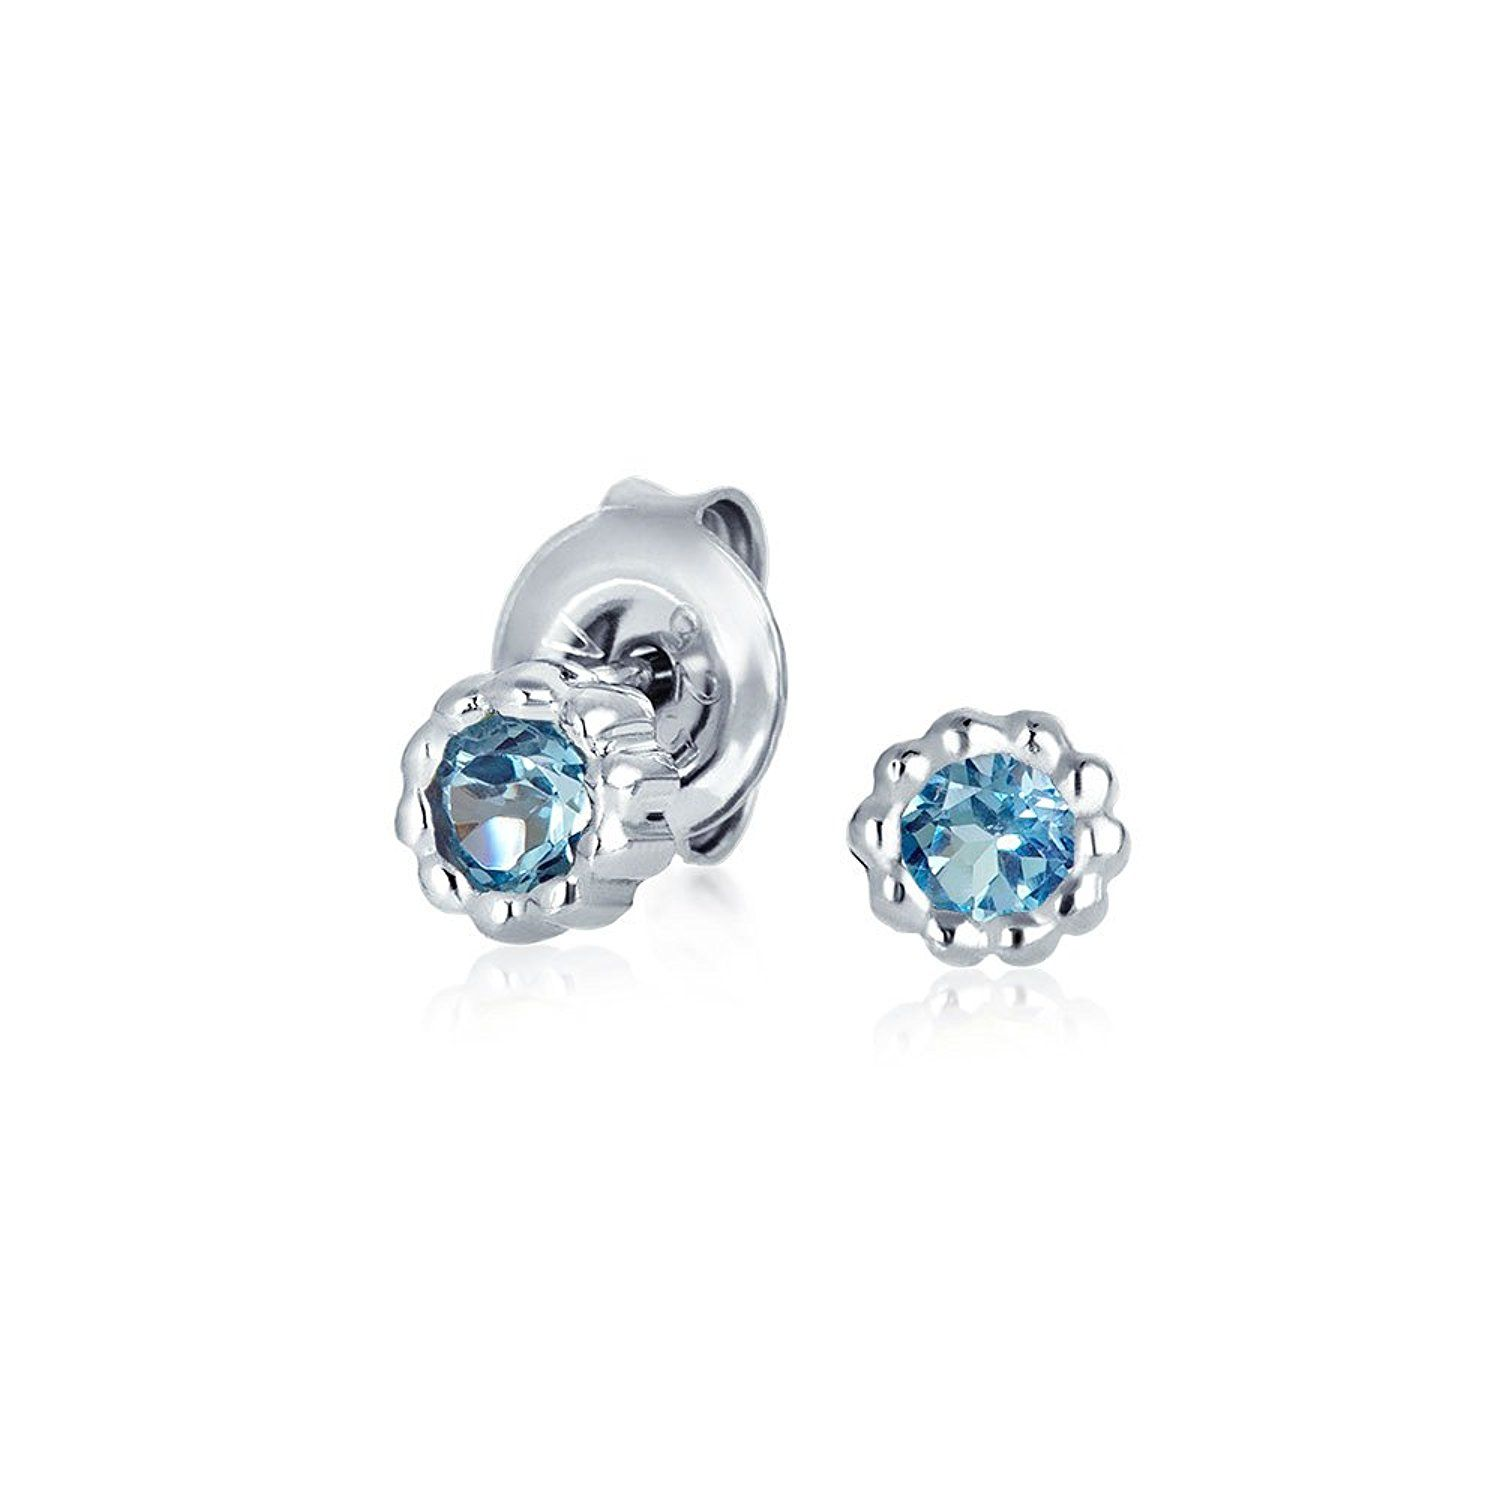 earrings december john birthstone star zoom greed women blue stud topaz